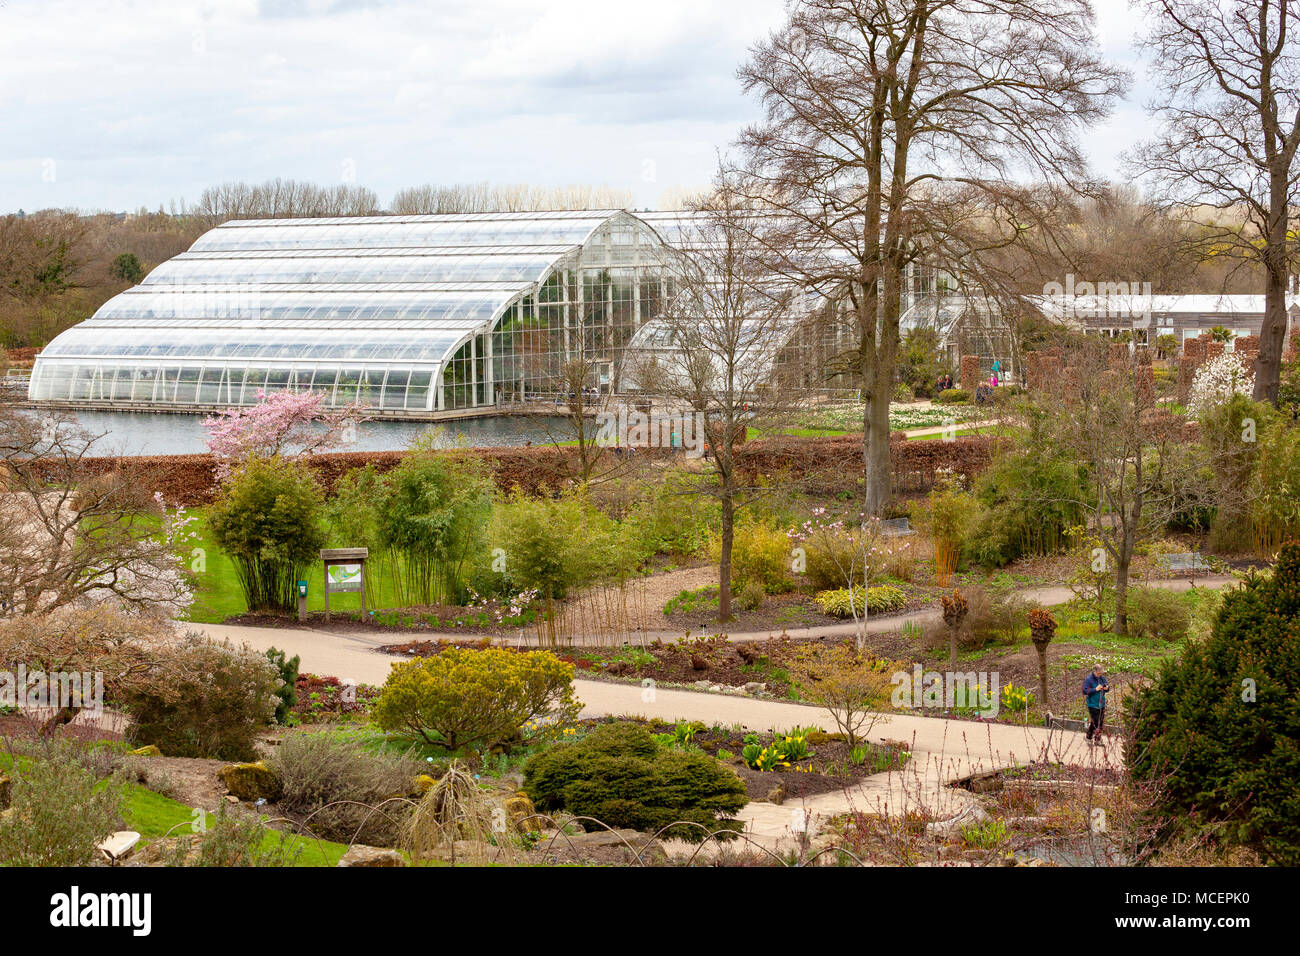 The Glasshouse at RHS Wisley Stock Photo: 179804660 - Alamy